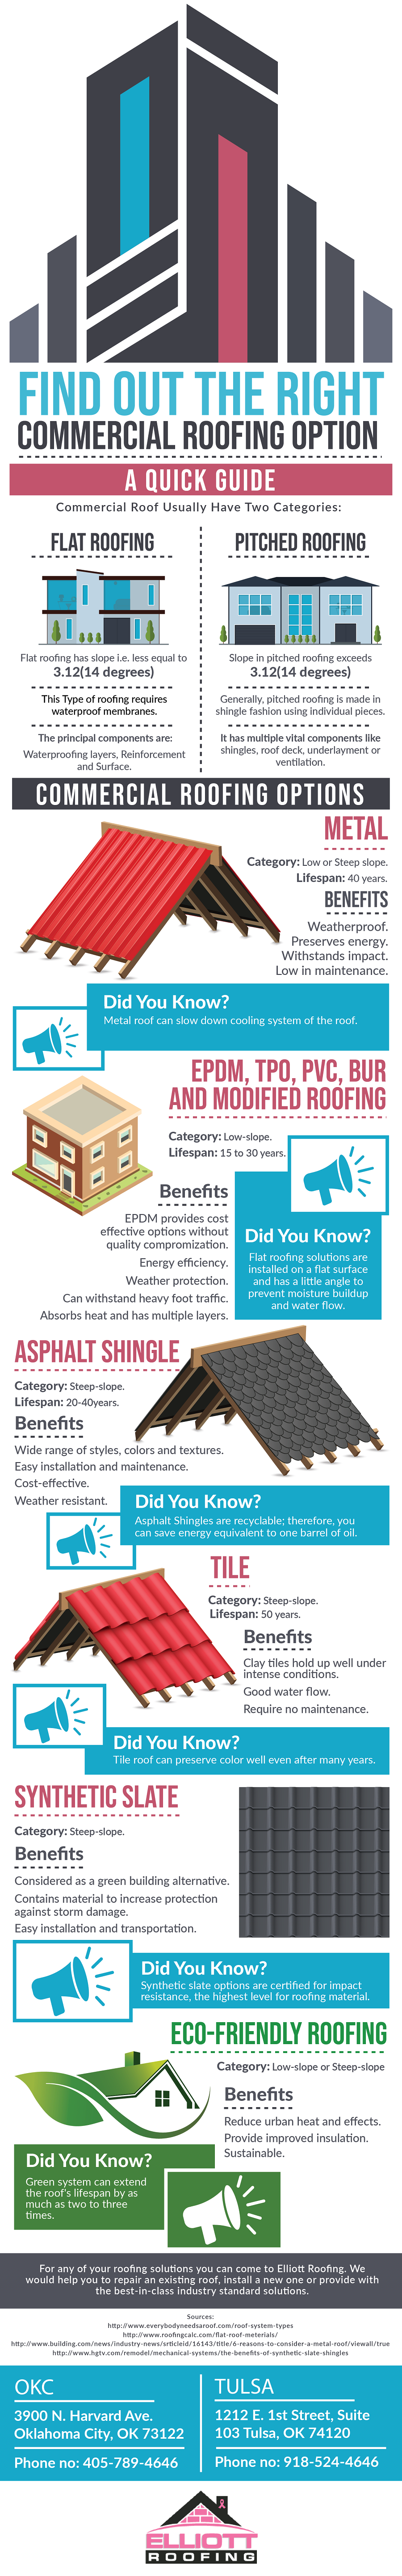 commercial roofing option.png